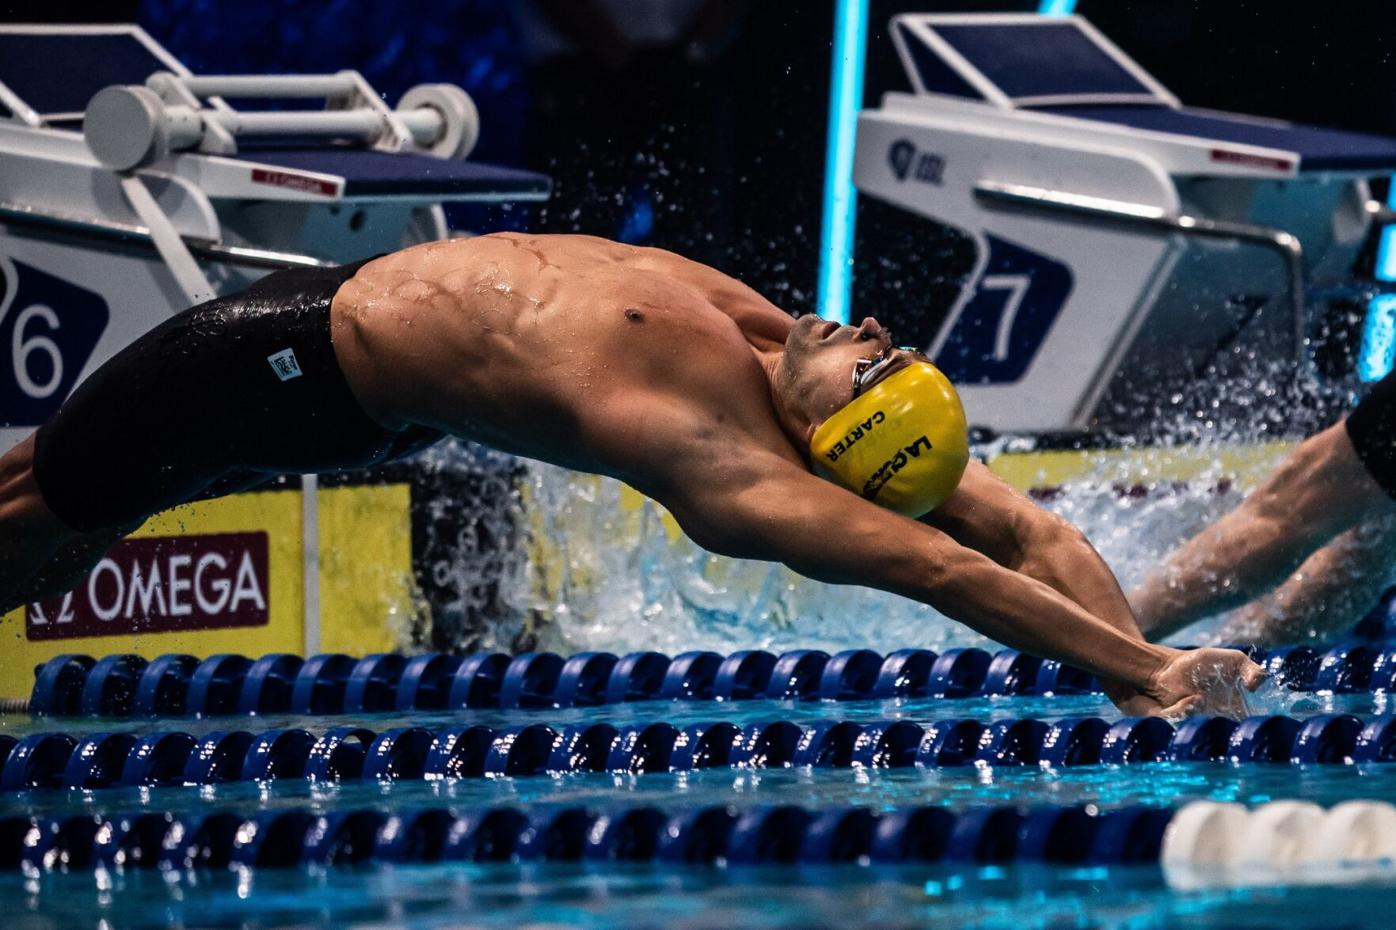 (flashback) FULL STRETCH: Los Angeles Current's Dylan Carter gets off to a quick start in the Men's 100m backstroke, during match number 10 of the International Swimming League (ISL) 2020, at the Duna Arena in Budapest, Hungary, yesterday. Carter bagged silver in the event, in a new national record time of 50.11 seconds. --Photo courtesy ISL